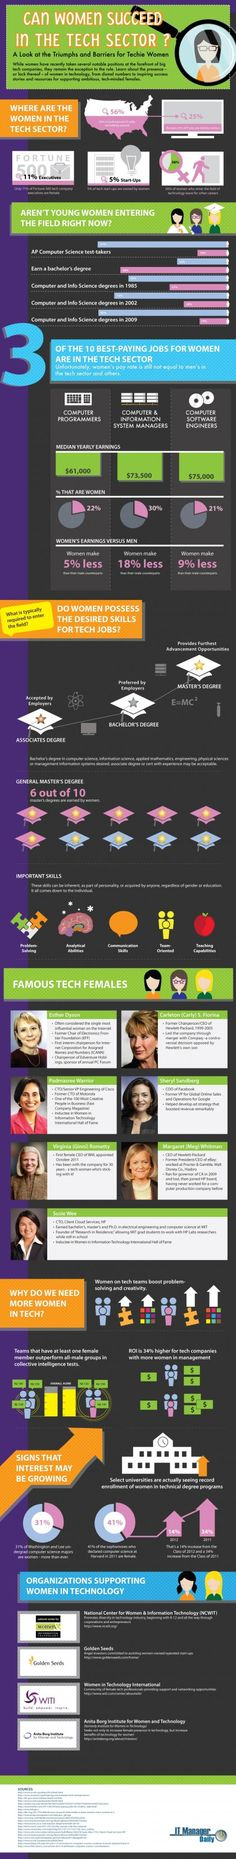 Can Women Succeed in the Tech Sector? Infographic looks at stats about women's representation in technical roles and why increasing the representation of women is so important.